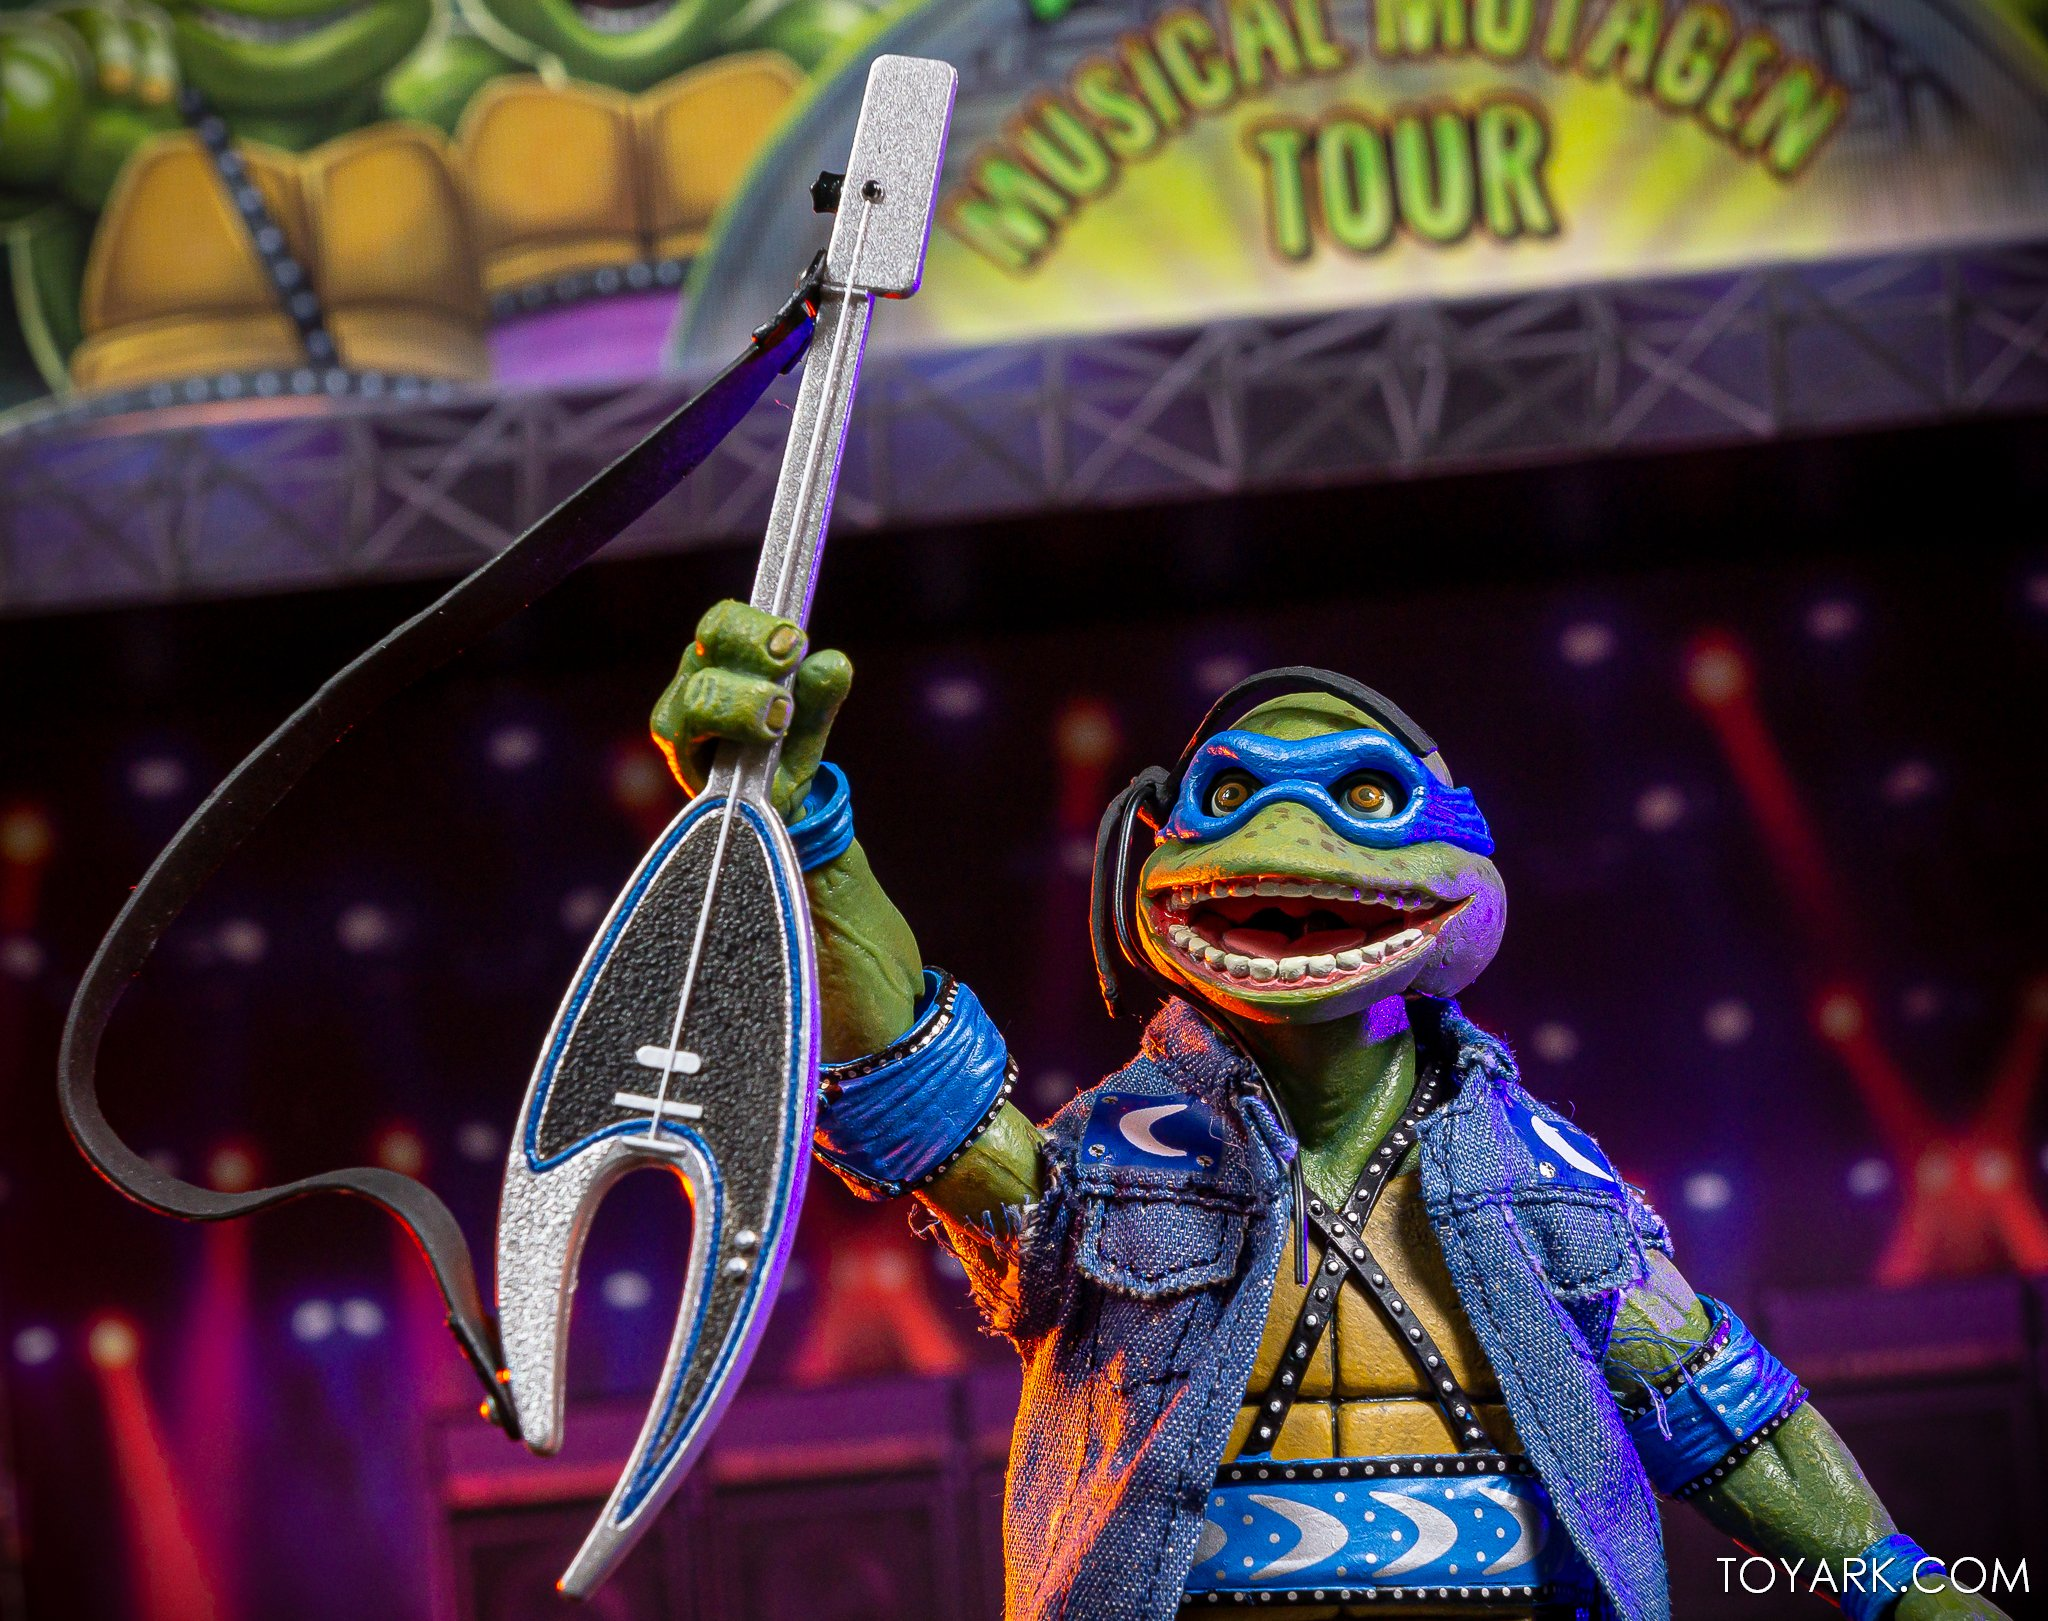 https://news.toyark.com/wp-content/uploads/sites/4/2020/07/SDCC-2020-TMNT-Musical-Mutagen-Tour-057.jpg